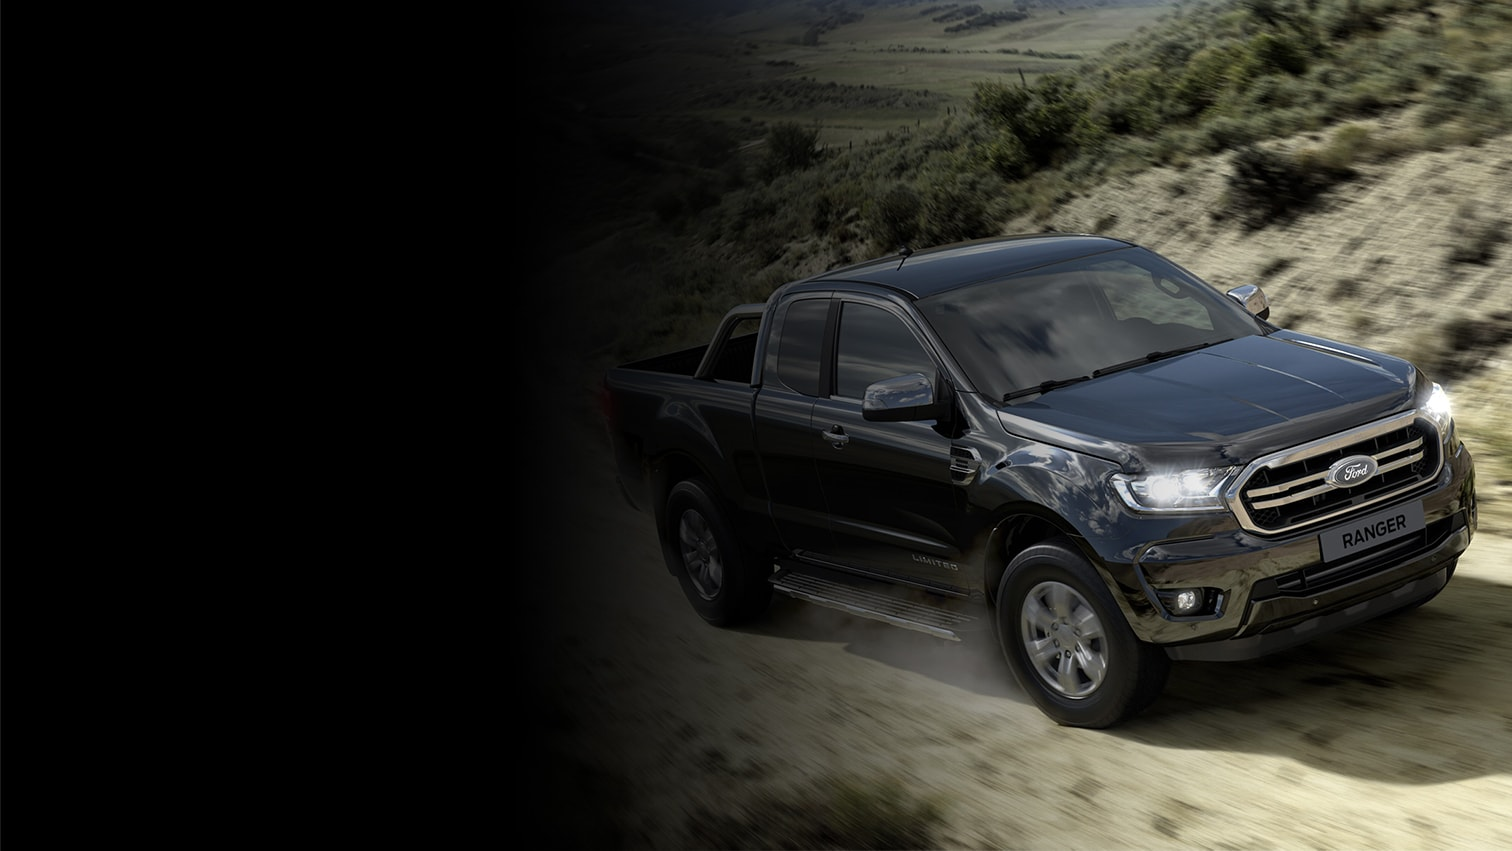 Ford Ranger Super Cab driving on rural road